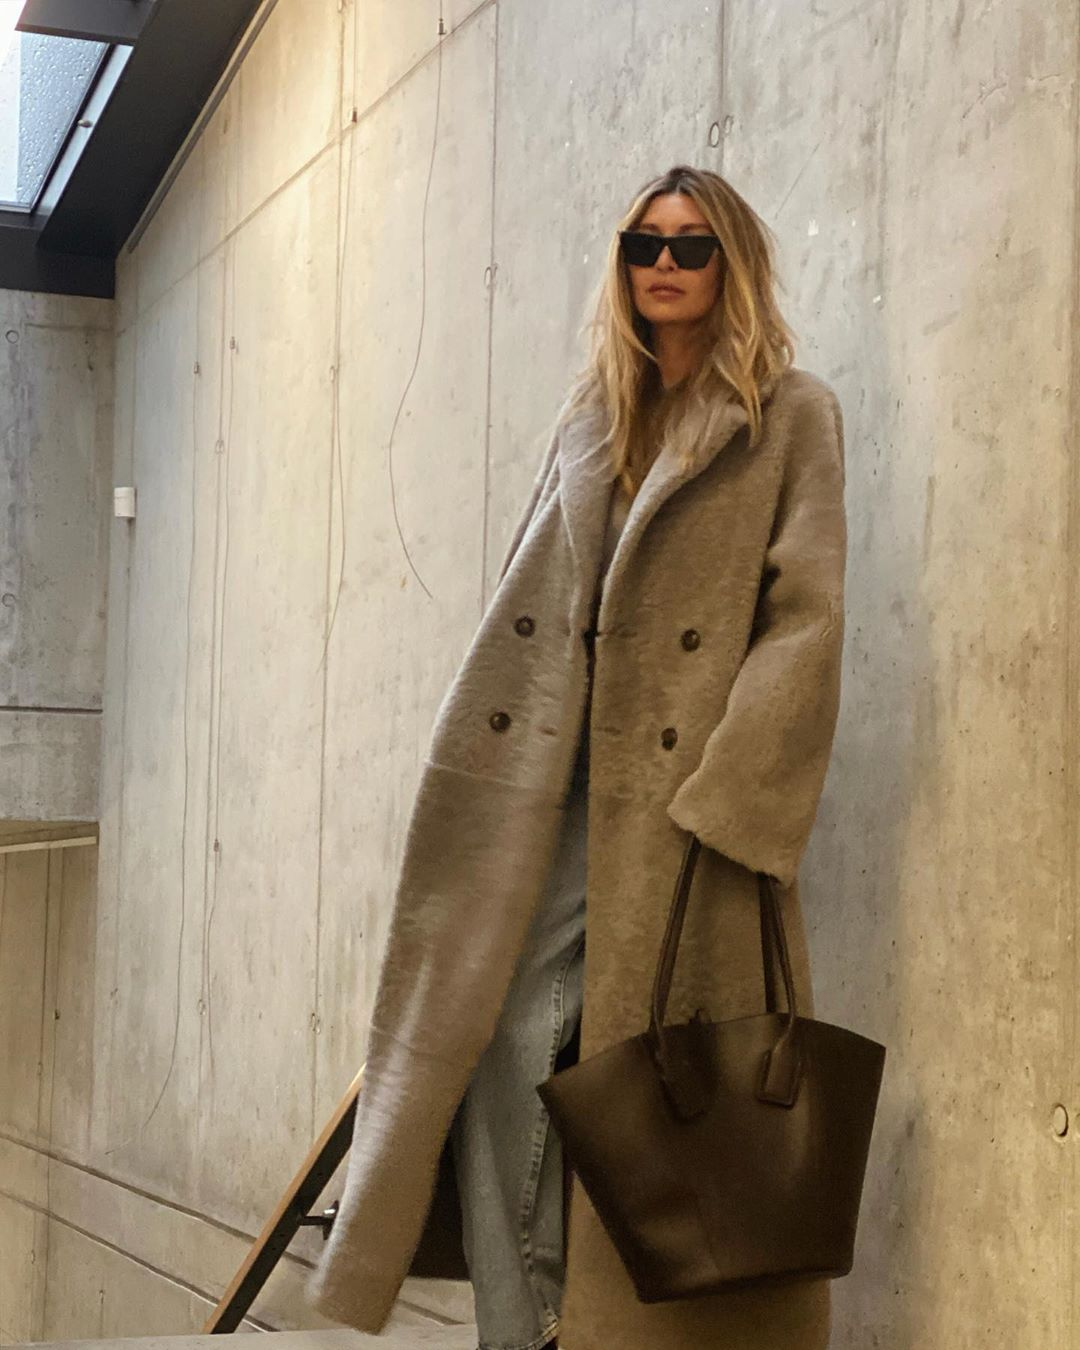 We're Obsessed With This Teddy Coat Look From Instagram — Ivana Mentlova Style